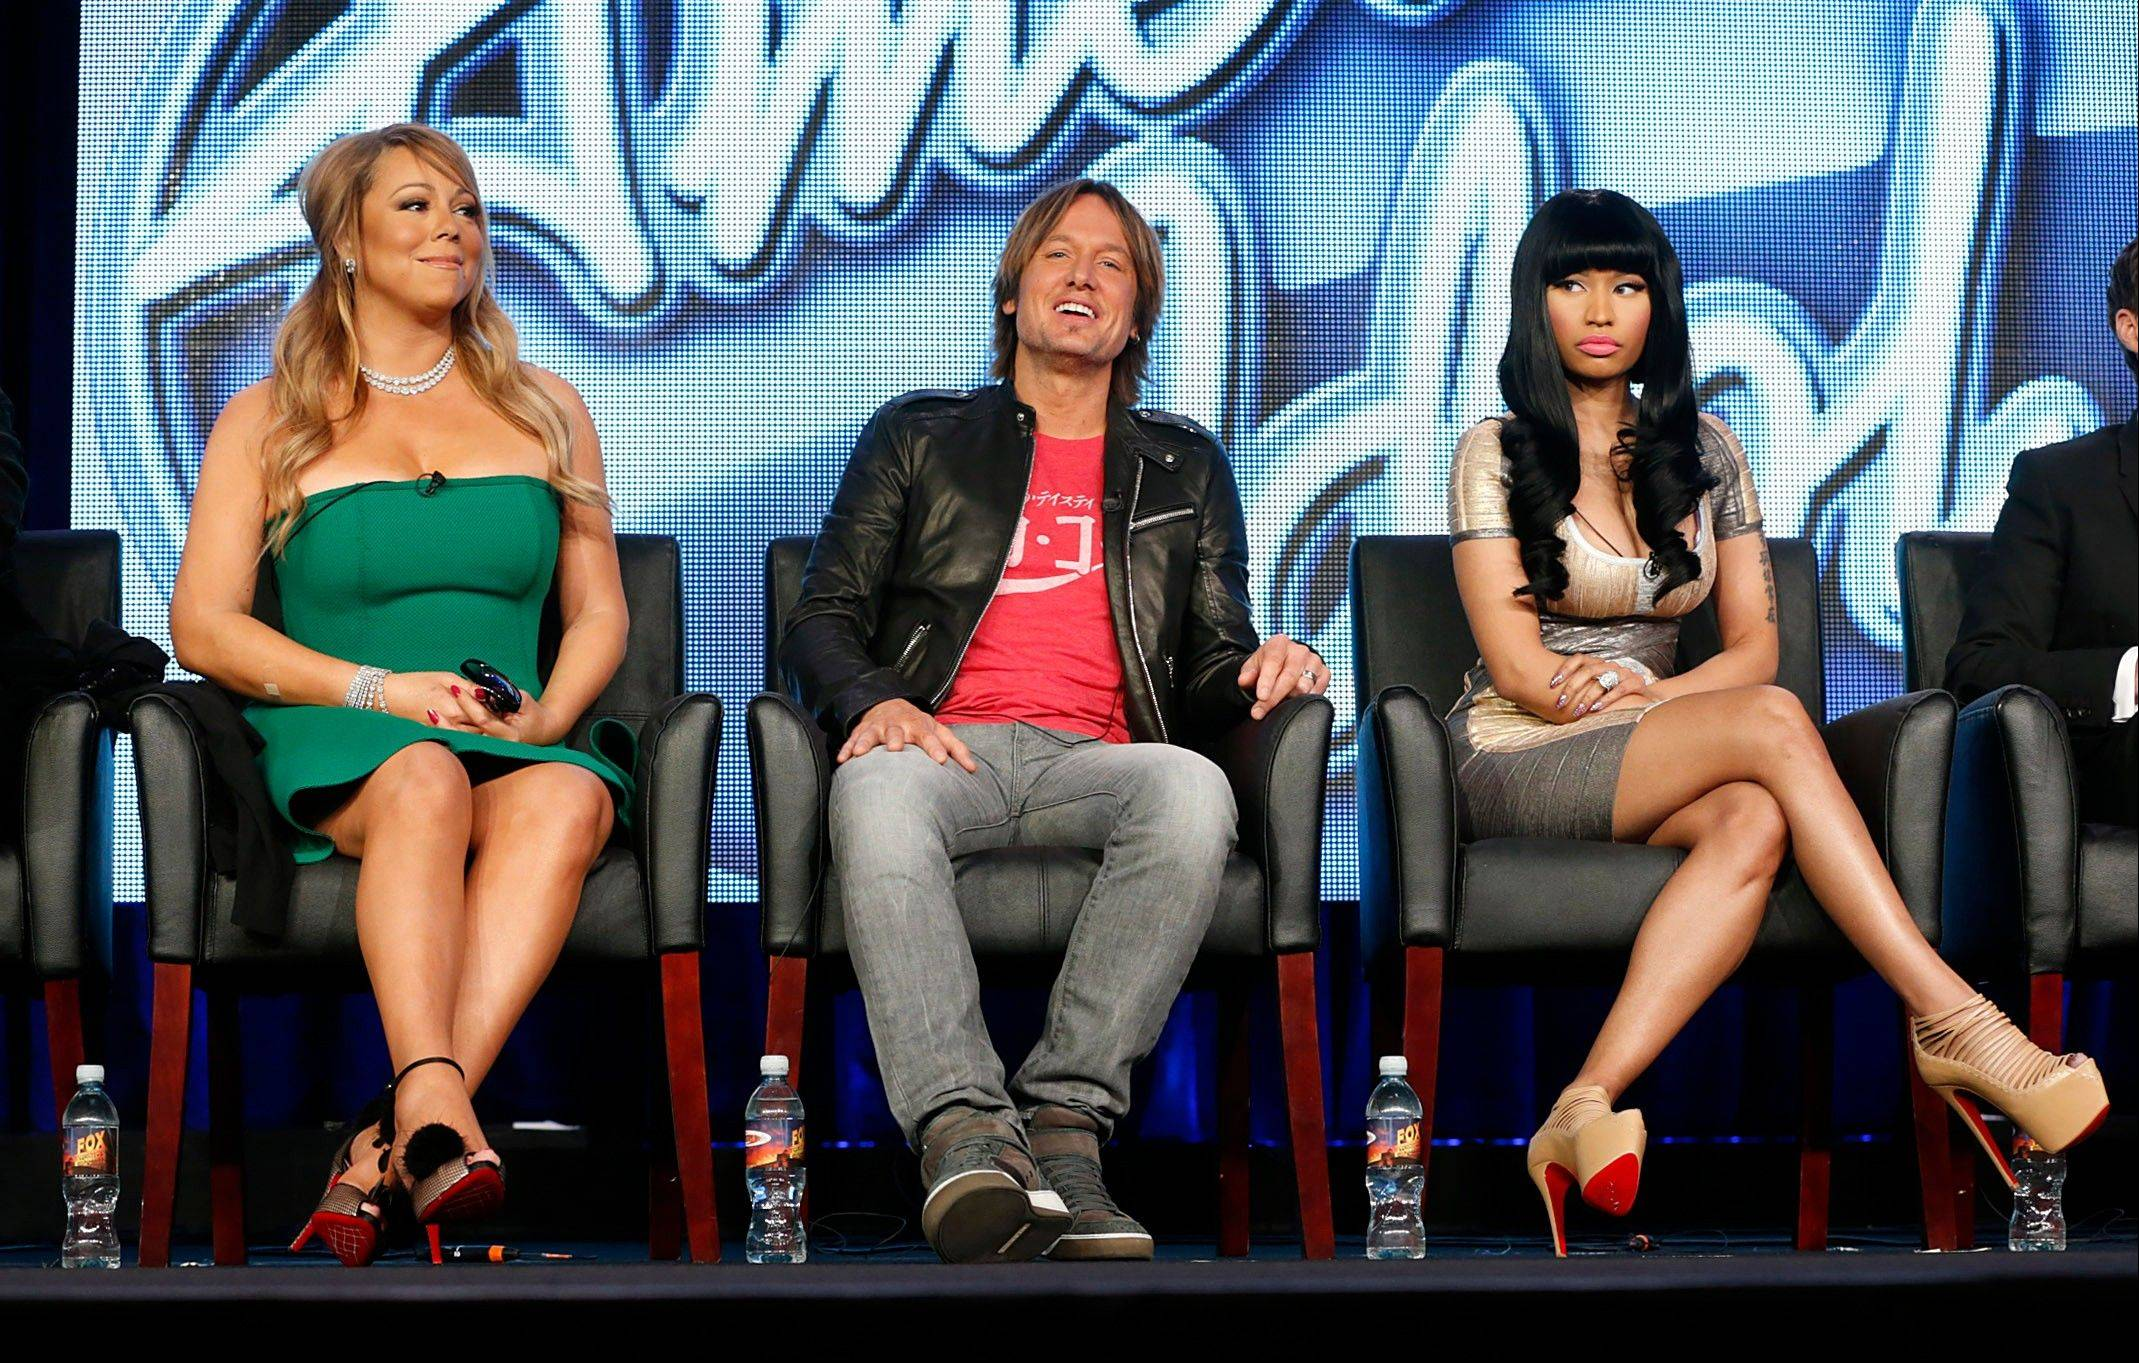 In this Jan. 8, 2013 photo, from left, Mariah Carey, Keith Urban and Nicki Minaj from �American Idol� attend the Fox Winter TCA Tour at the Langham Huntington Hotel, in Pasadena, Calif. All is not well in the once peaceful land of �American Idol,� despite a shake-up at the beginning of this season that was supposed to rejuvenate the aging Fox talent competition. Instead, the behind-the-scenes-and-sometimes-in-front-of-the-scenes drama continues to cast a shadow over the series, right up to the Thursday, May 16, 2013, coronation of its 12th season champion.